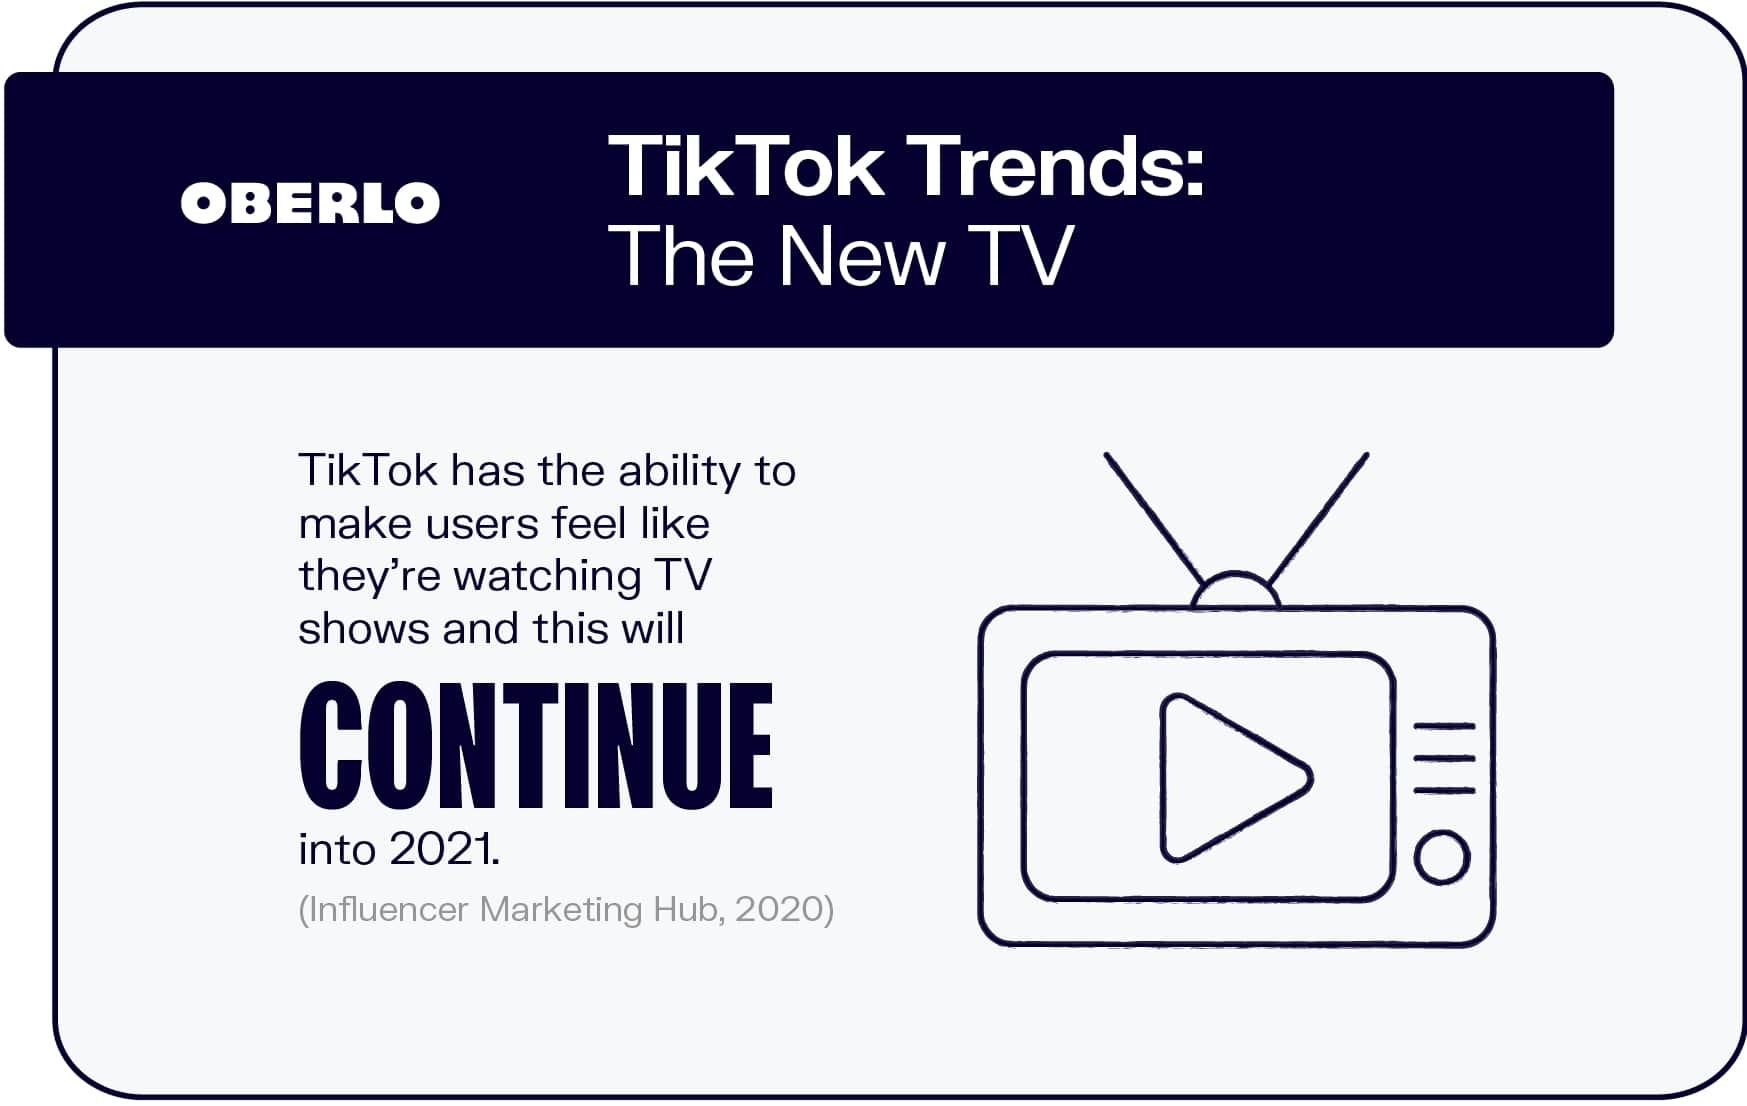 TikTok Trends: The New TV